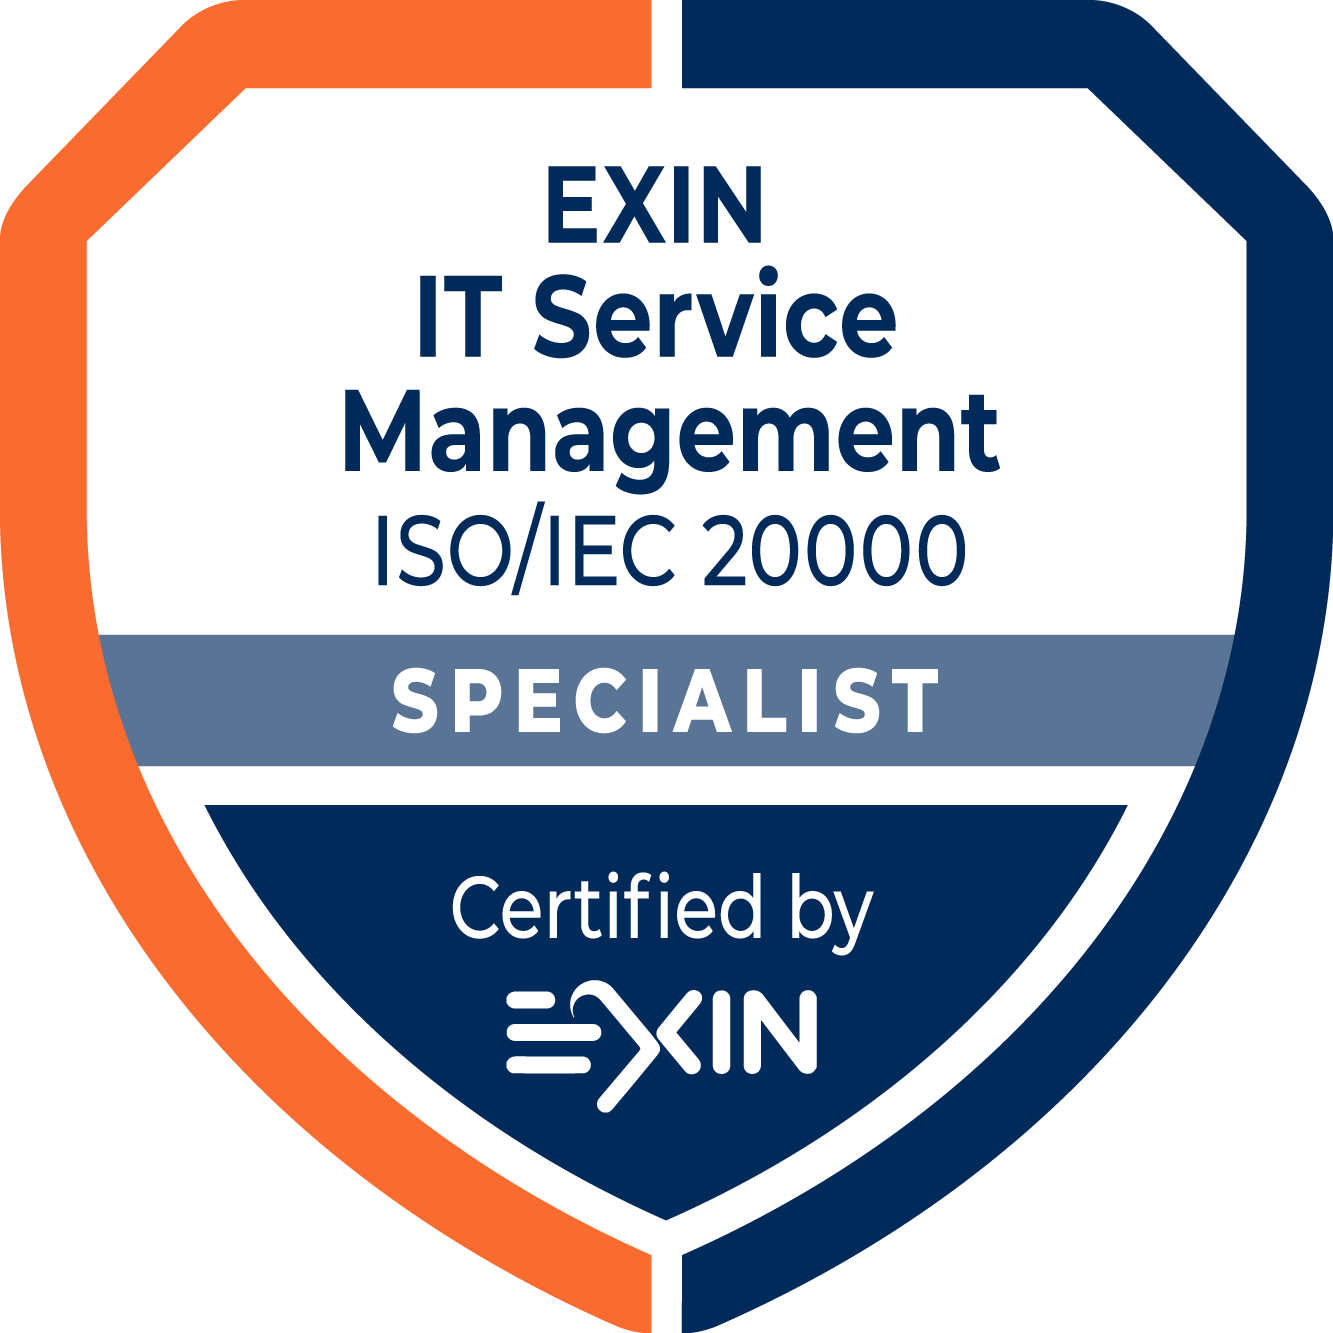 EXIN Specialist in IT Service Management based on ISO/IEC 20000:2011